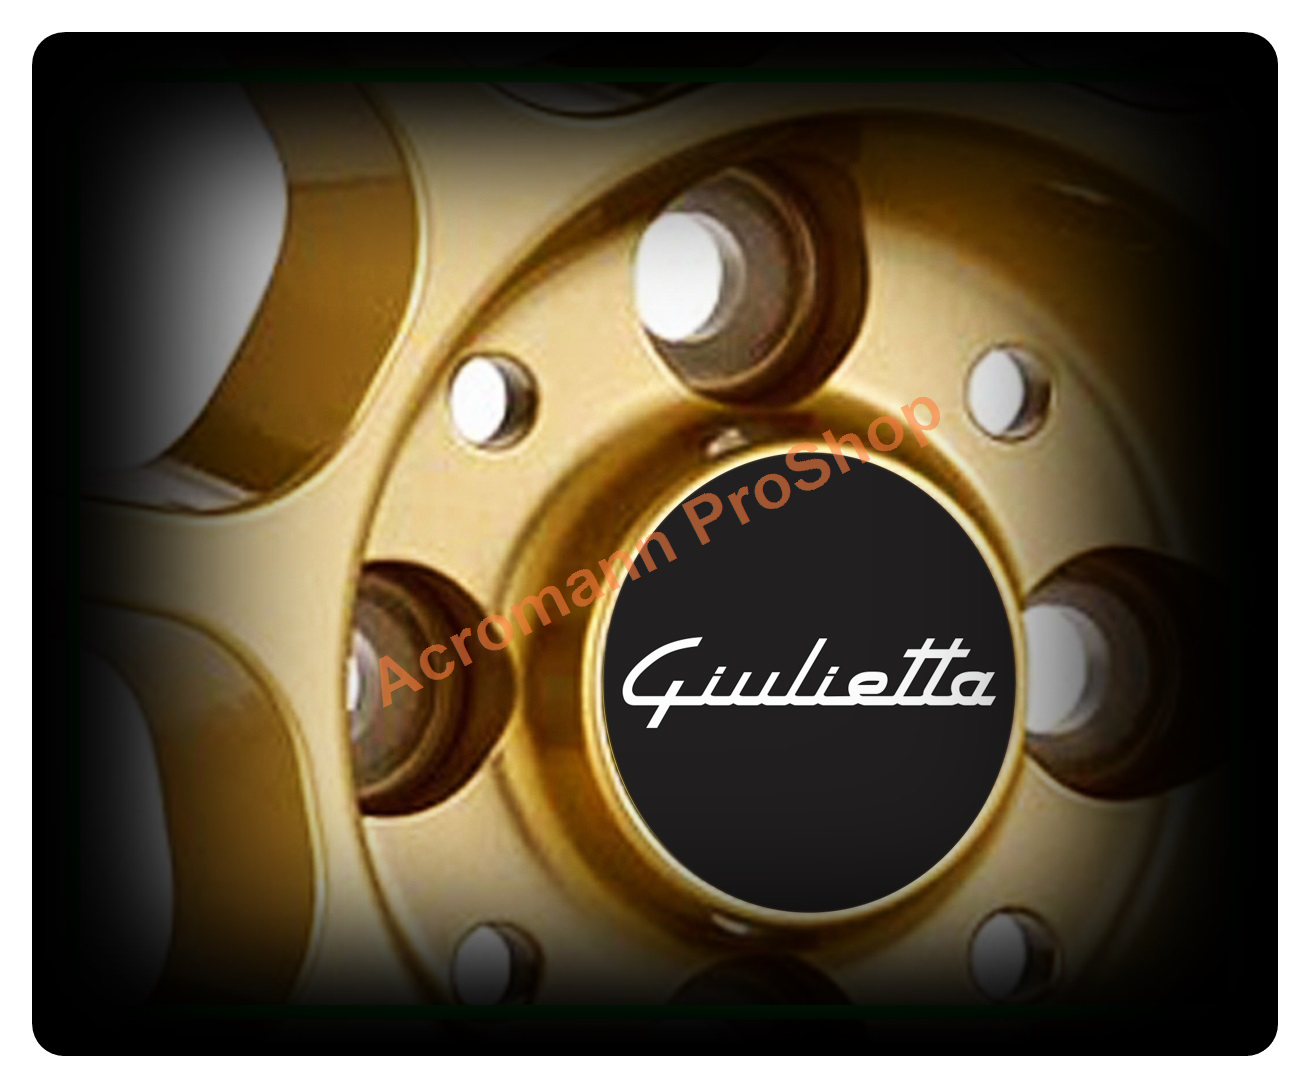 Alfa Romeo Giulietta Printed 2.2inch Wheel Cap Decal x 4 pcs